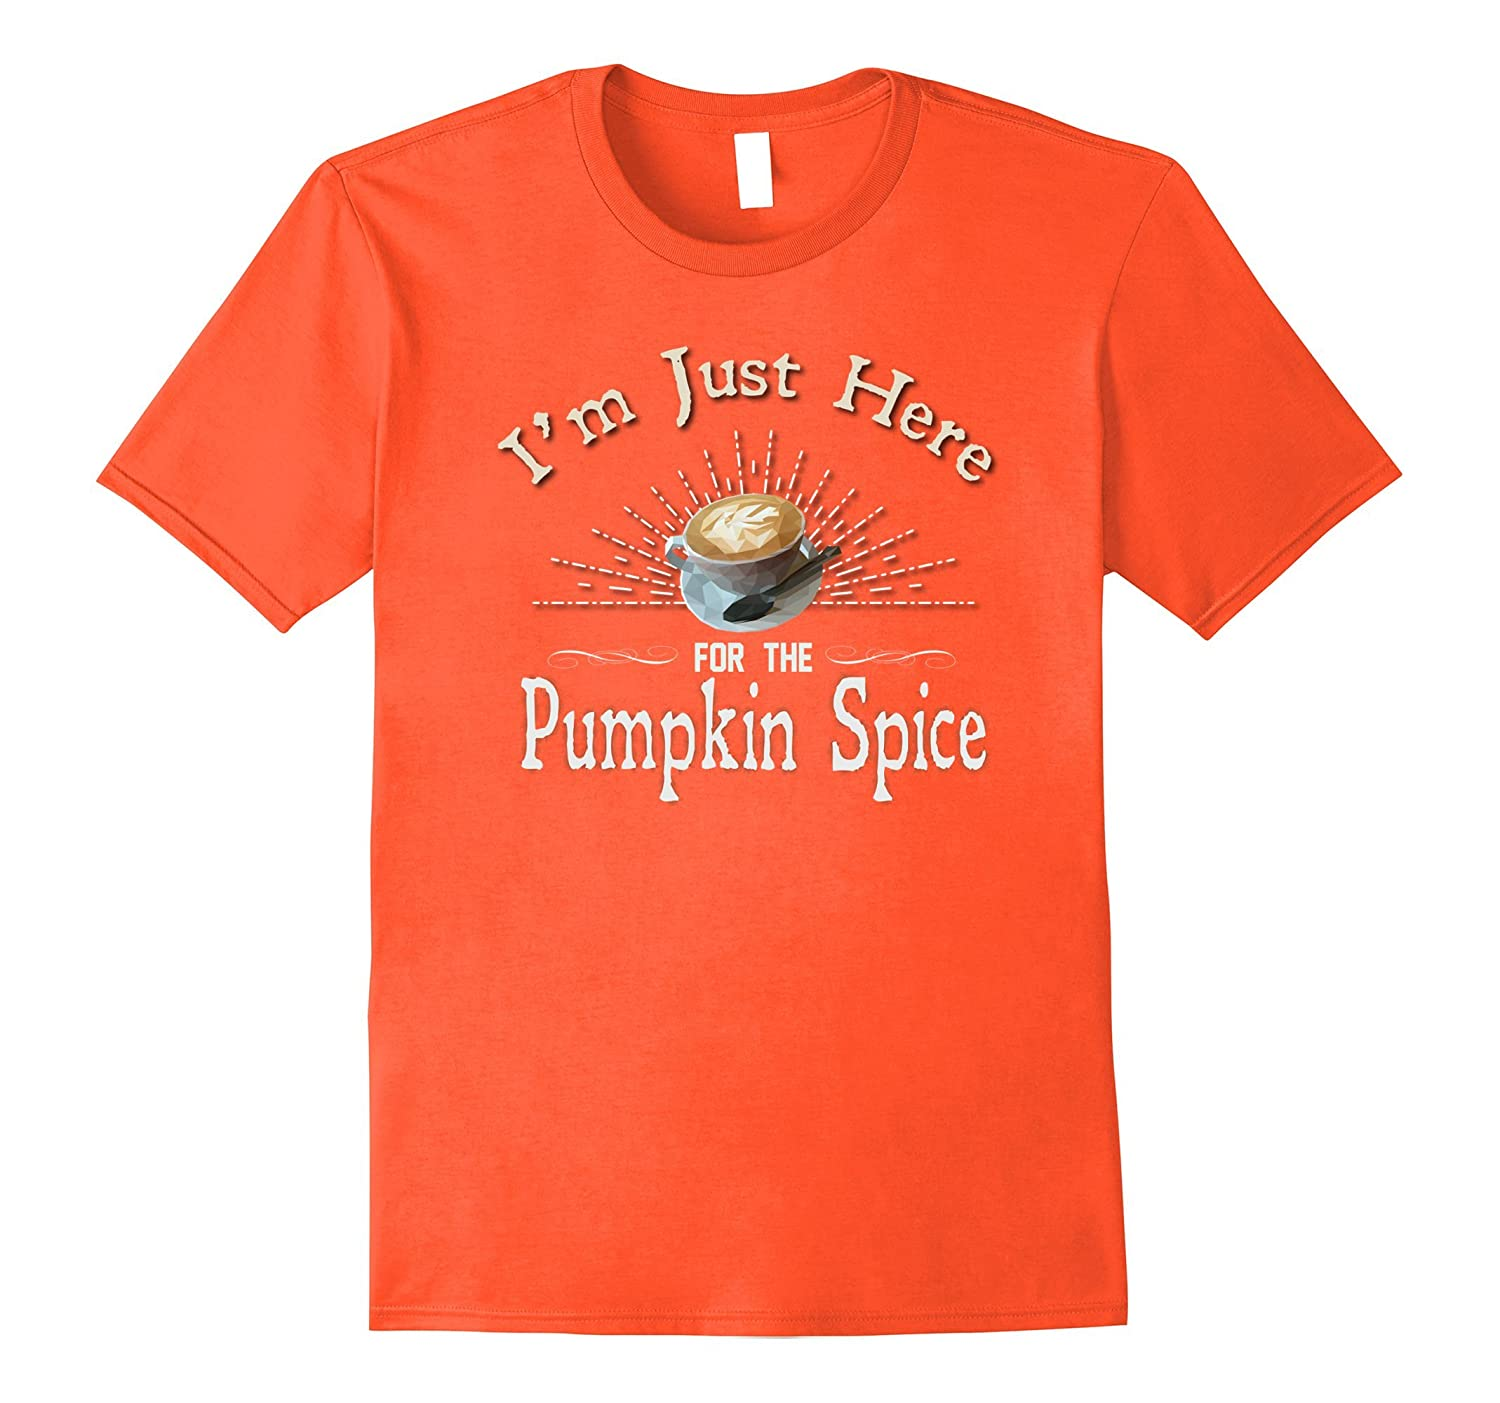 Im Just Here for the Pumpkin Spice T Shirt Women Men Plus-TJ